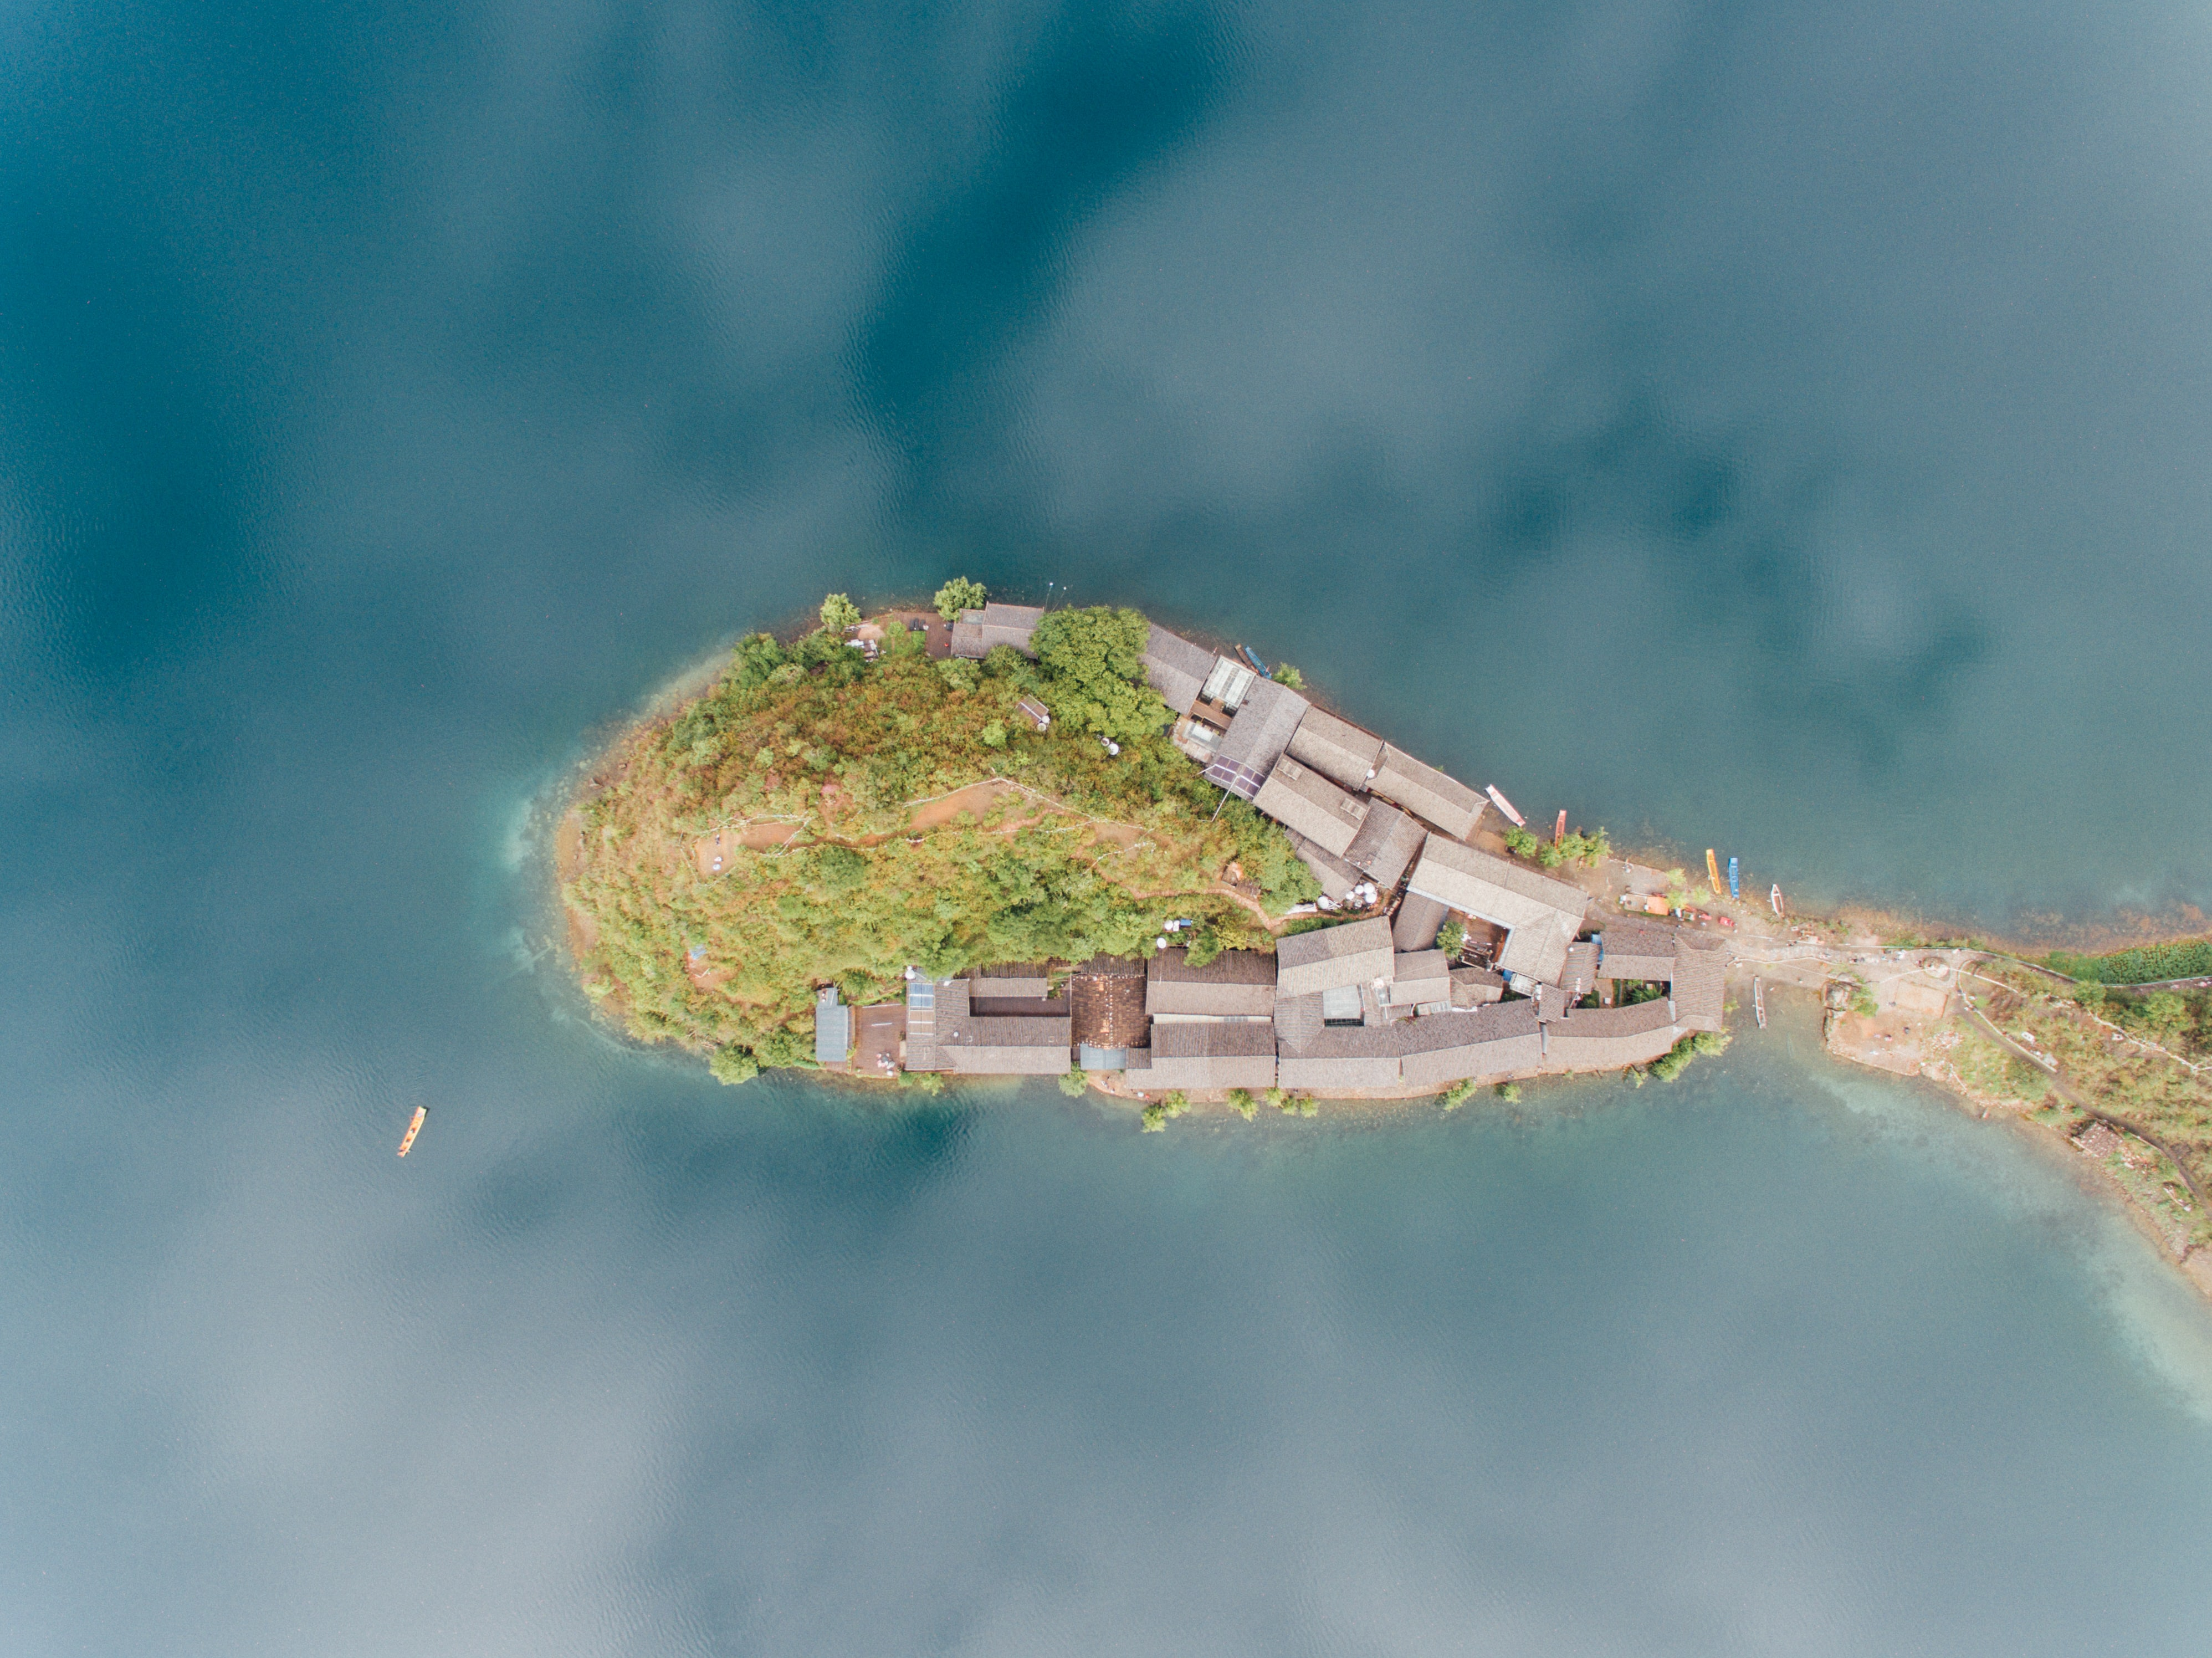 aerial shot of island